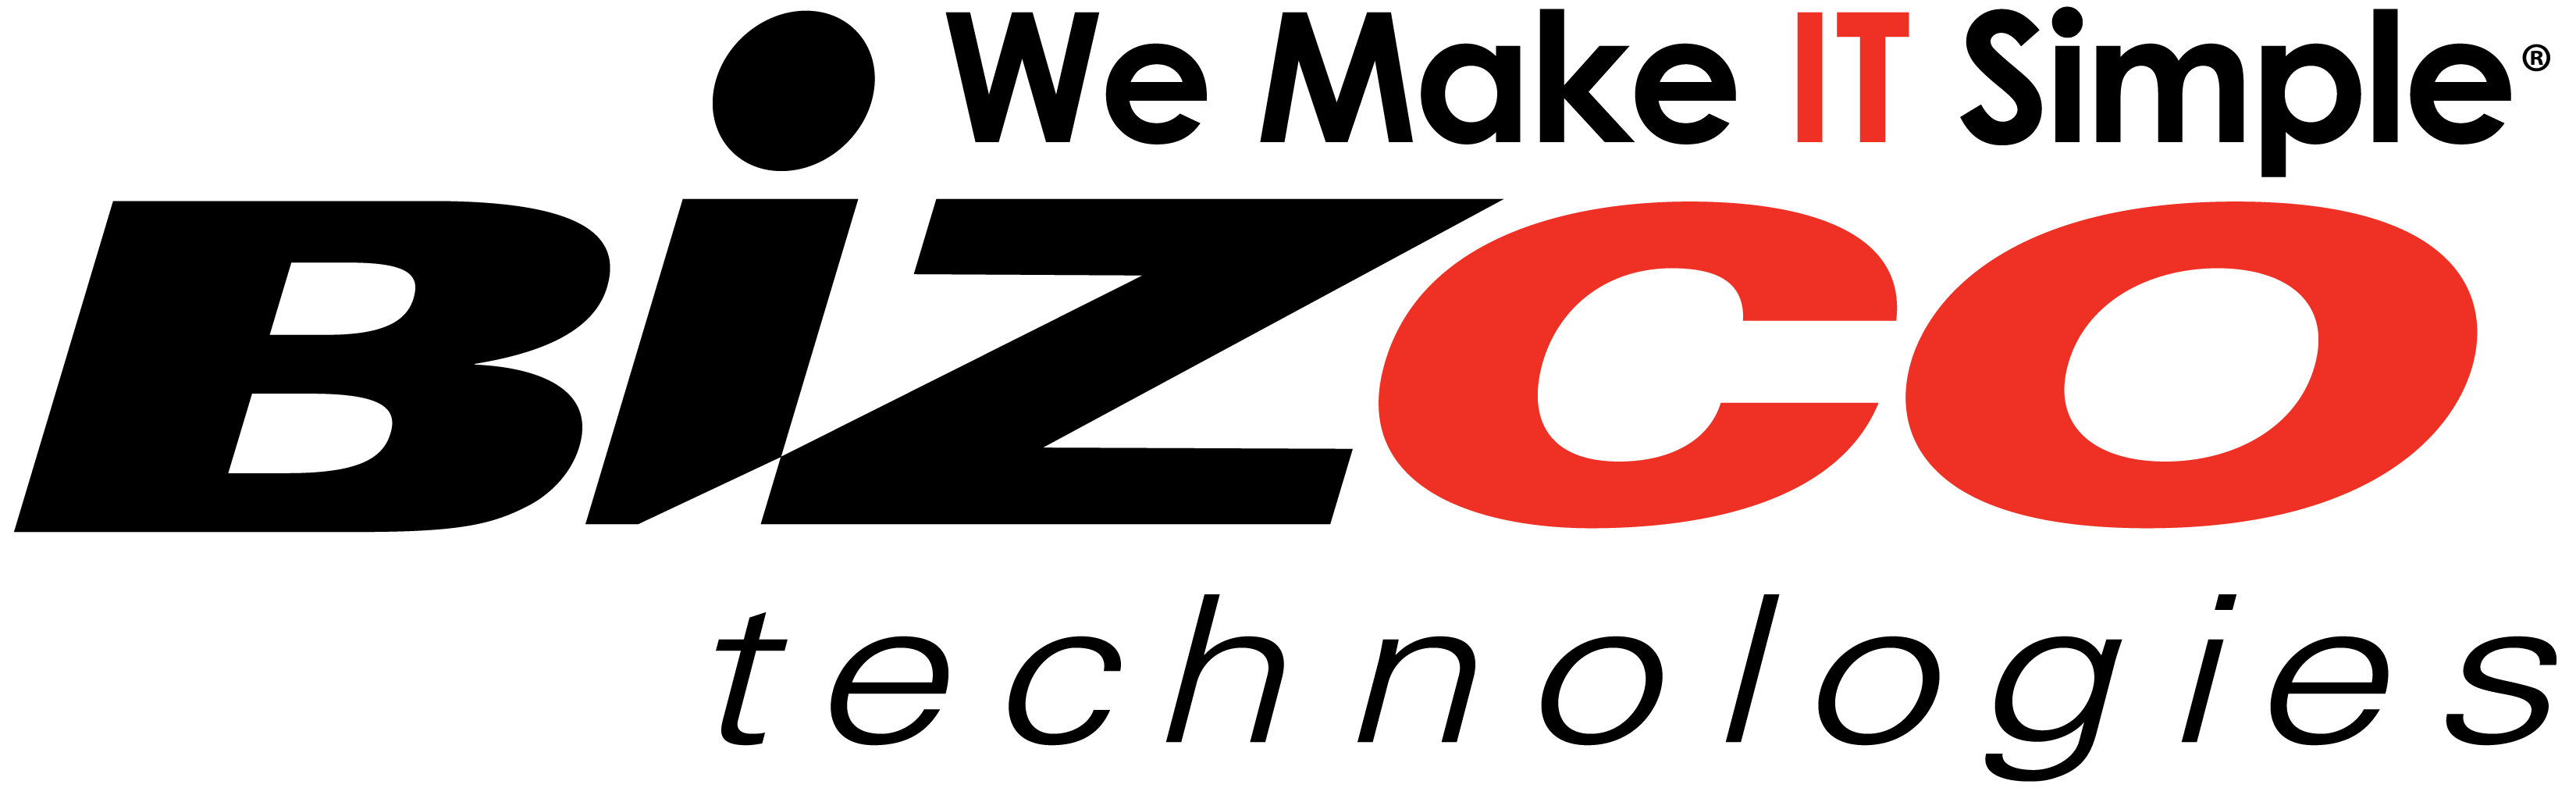 A managed service provider based in Nebraska, we've put IT and AV together to keep IT simple. | Bizco Technologies